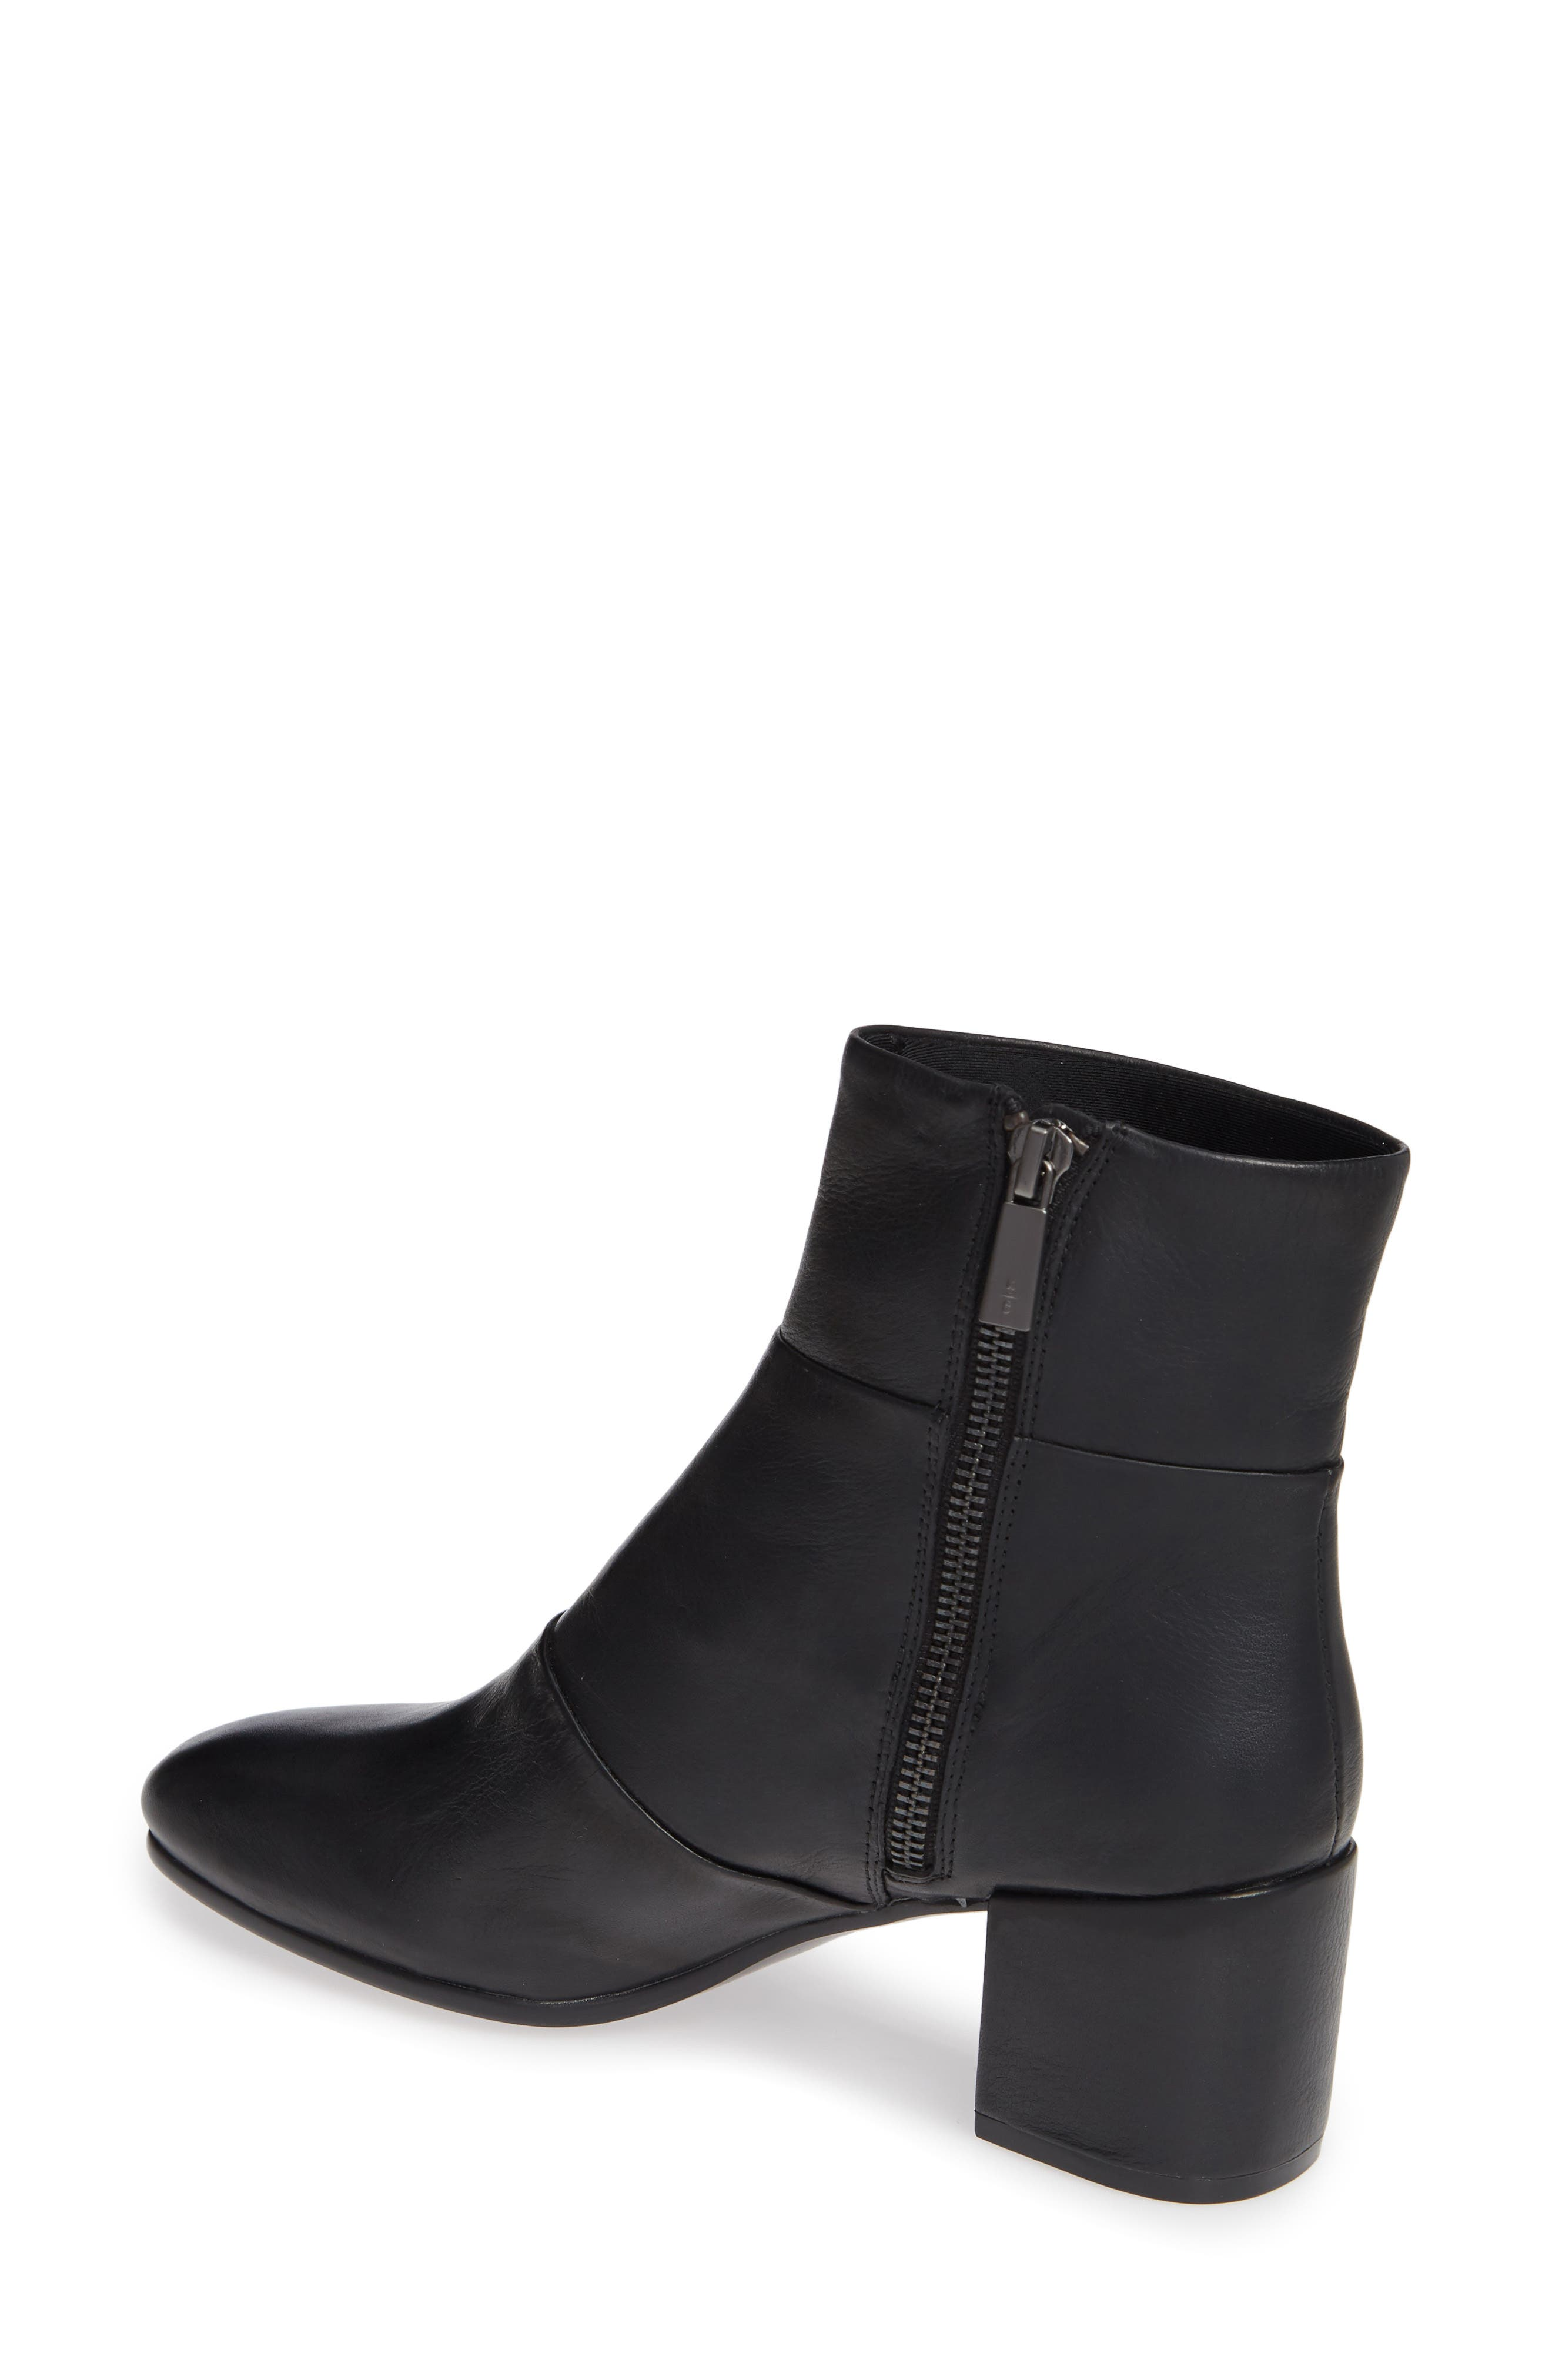 Eryc Bootie,                             Alternate thumbnail 2, color,                             BLACK LEATHER